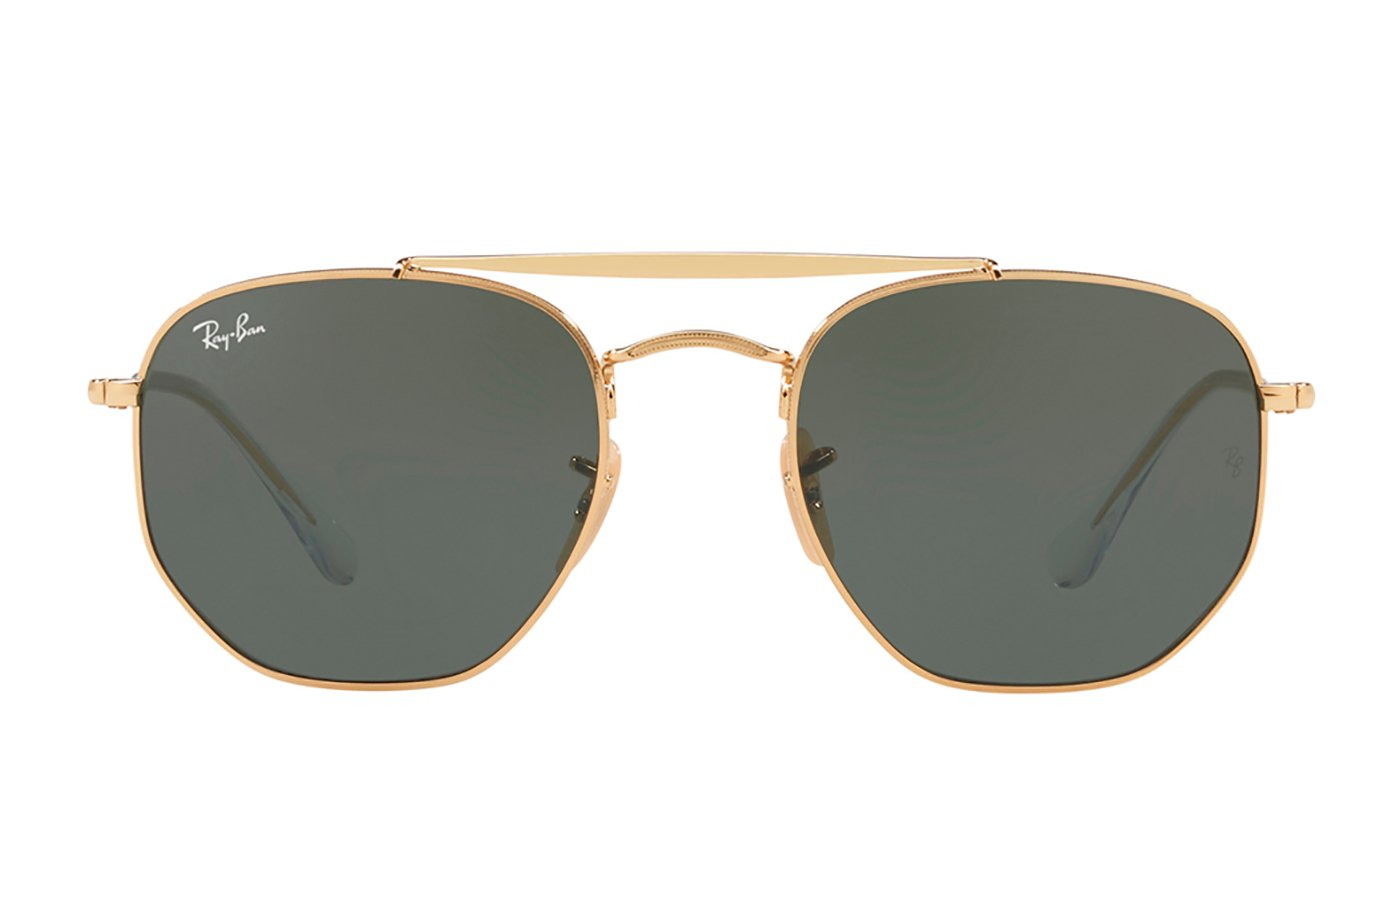 RAY-BAN THE MARSHAL GOLD 0RB3648 51 001